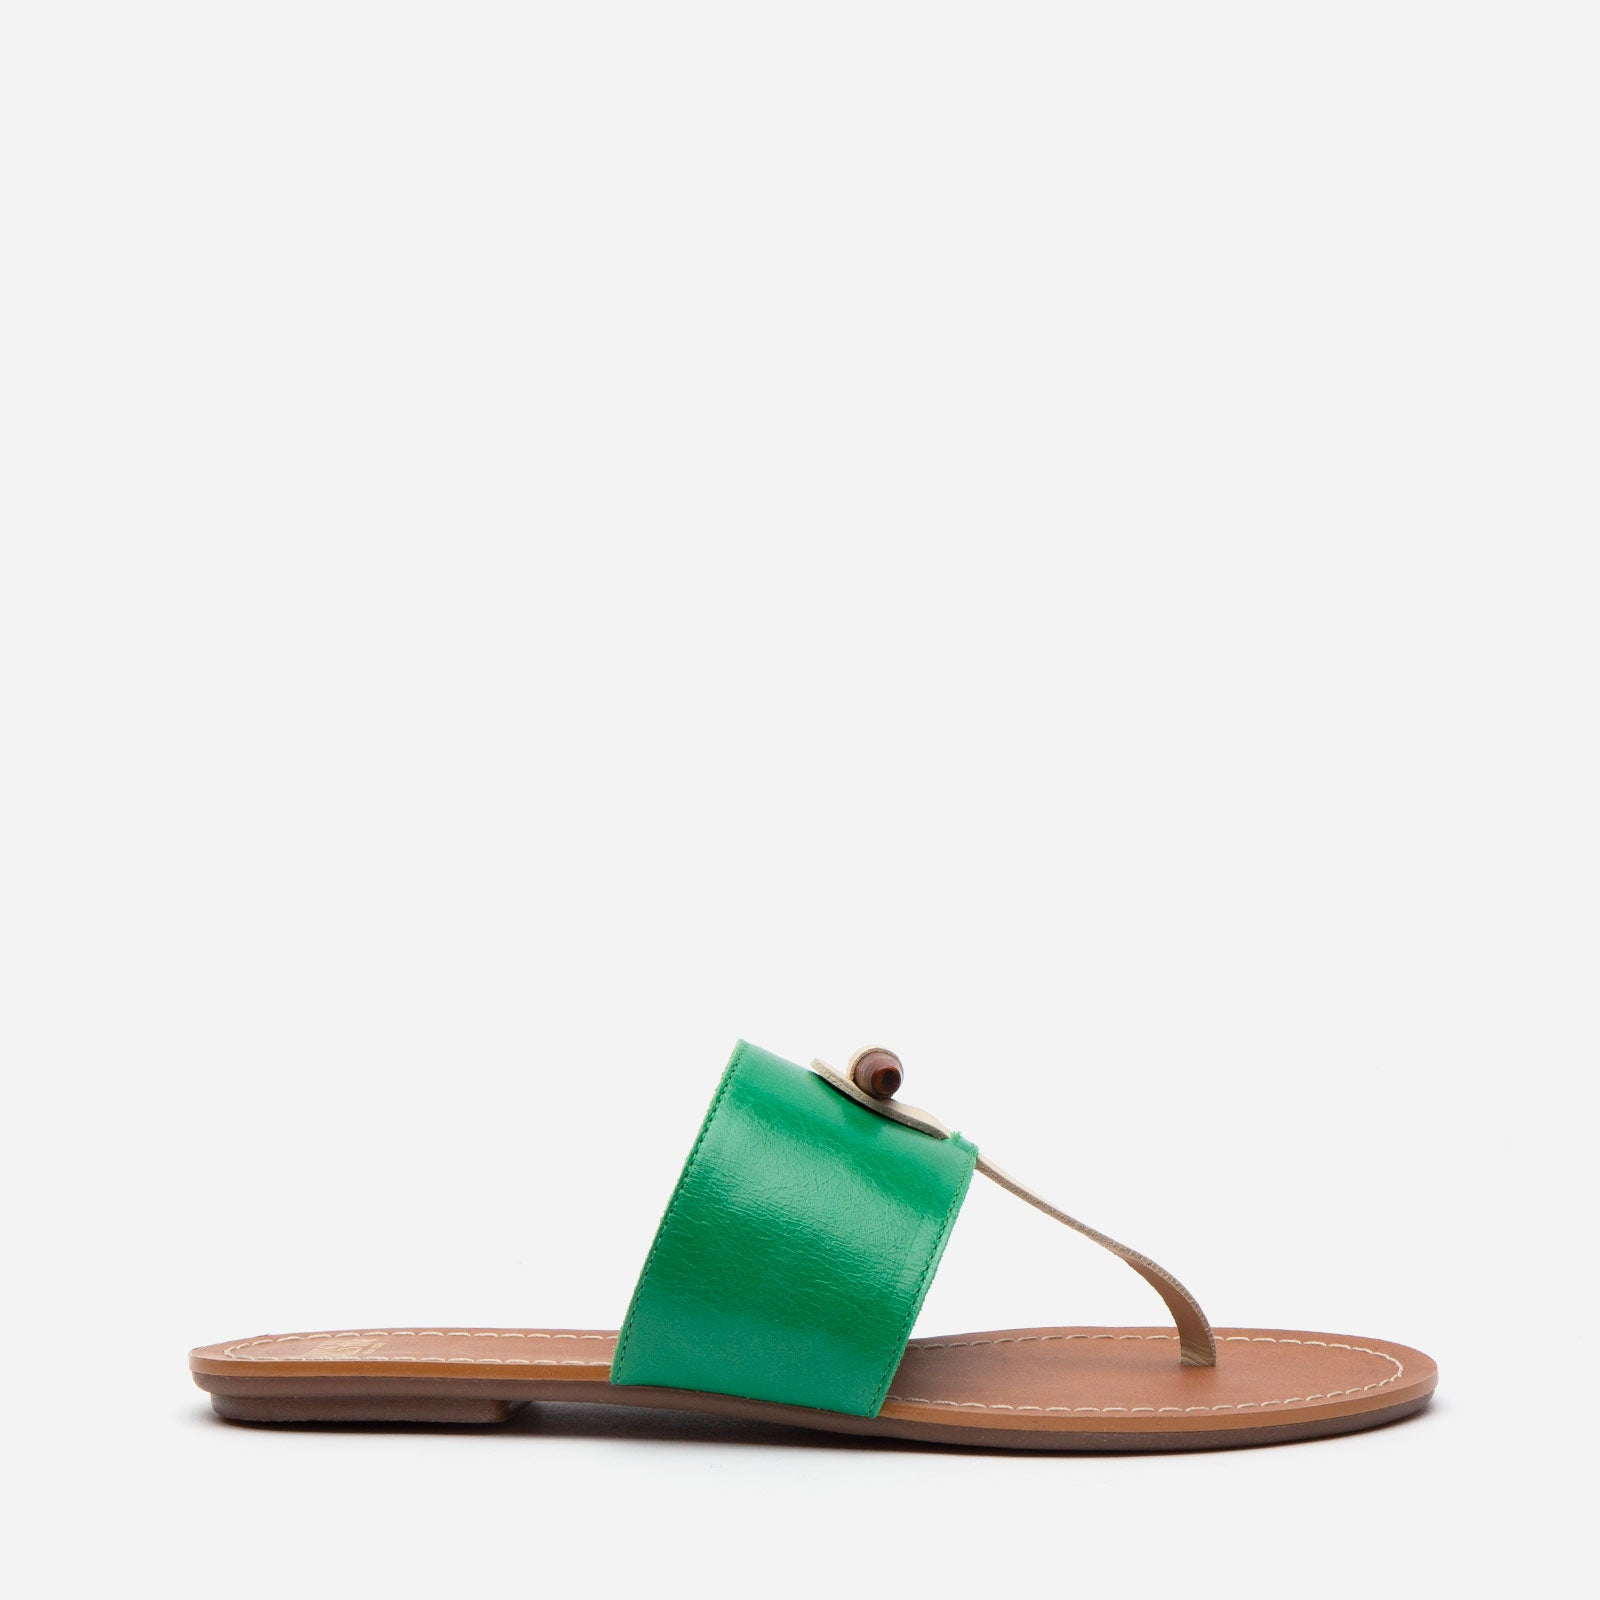 Toggle Slide Naplak Leather Green Oyster